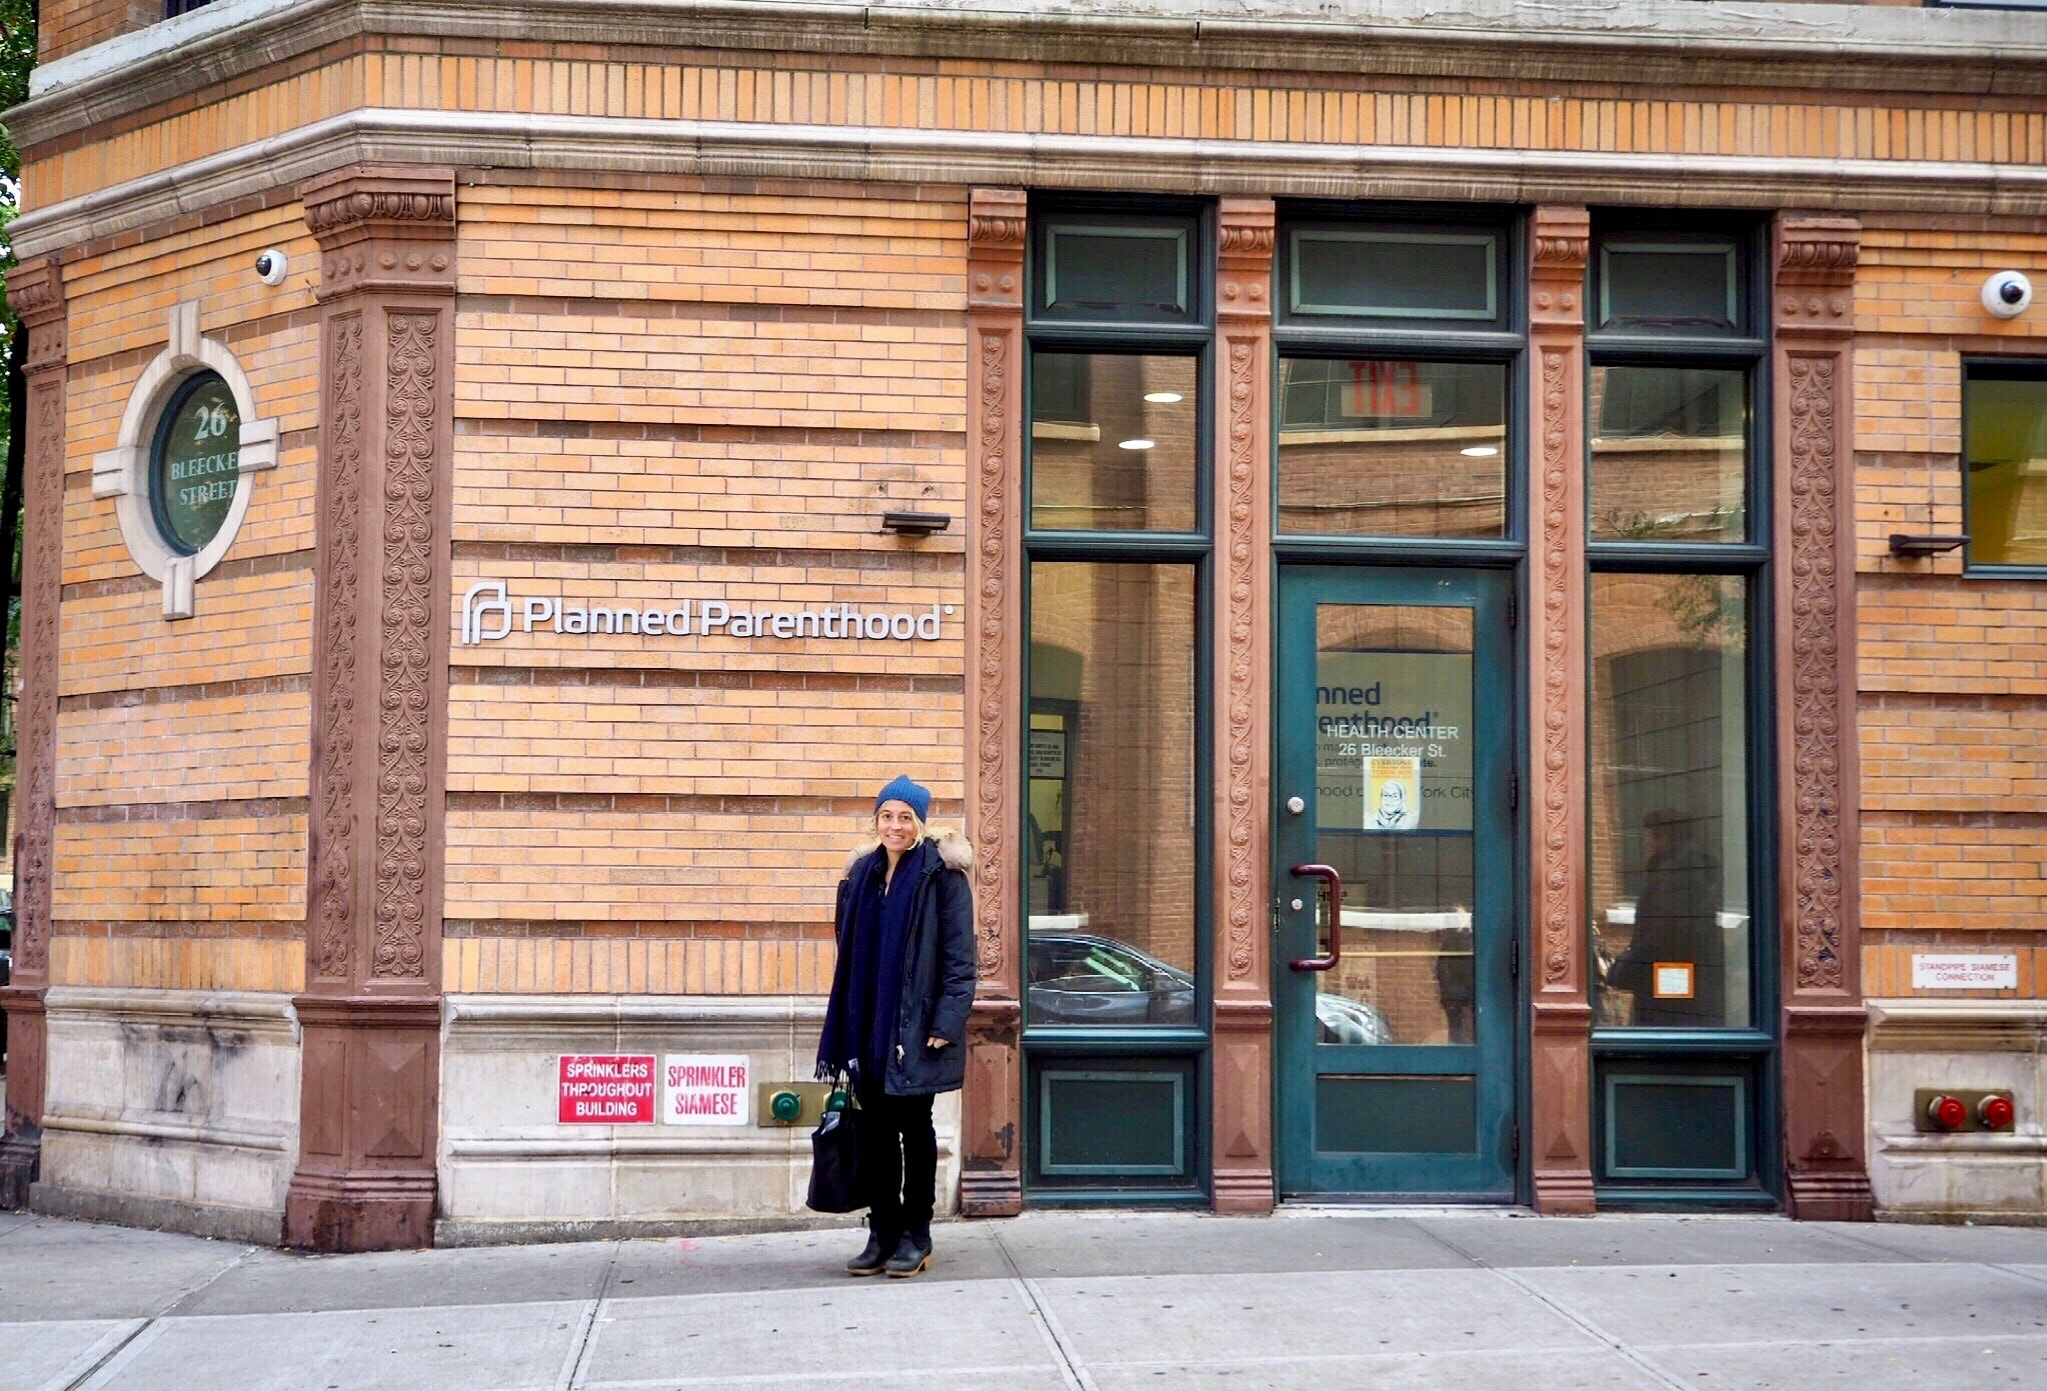 Amy Richards in front of Planned Parenthood in NYC | © Culture Trip / Nikki Vargas